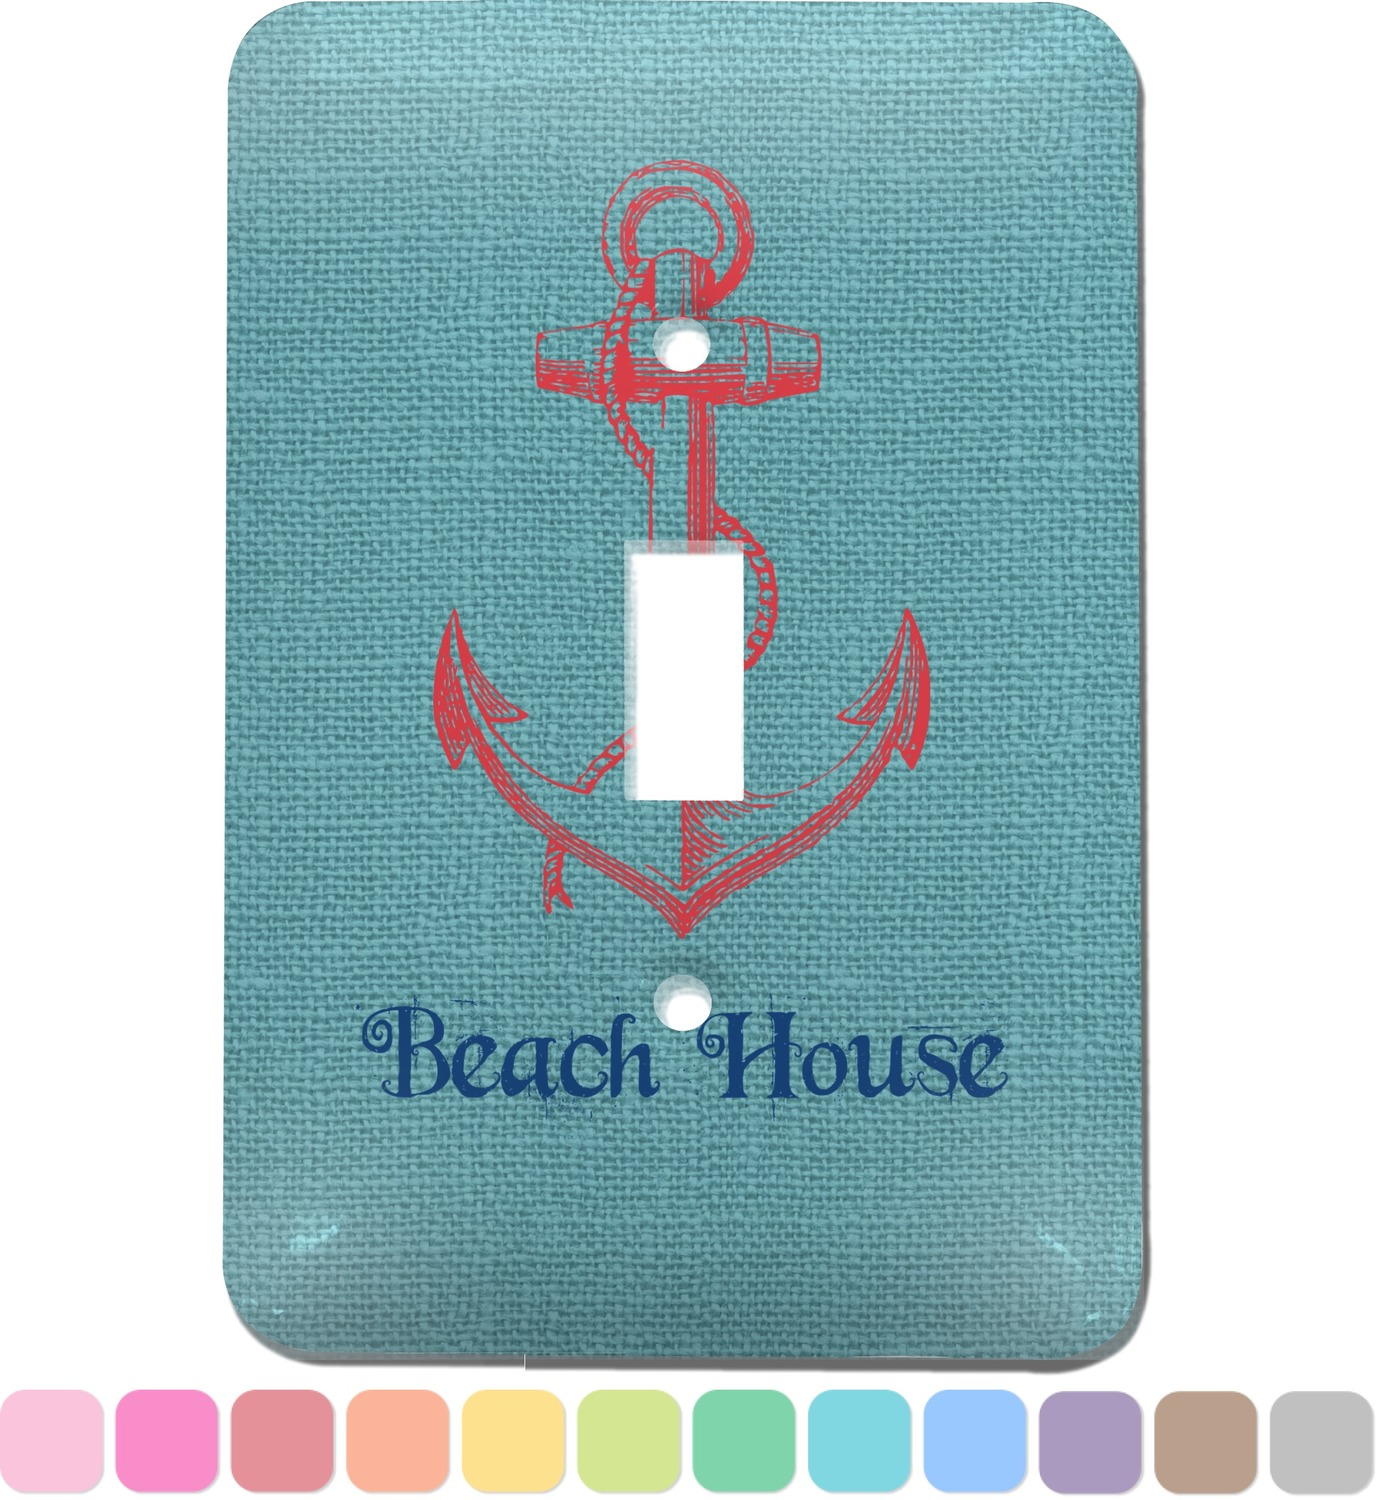 Chic Beach House Light Switch Cover Single Toggle